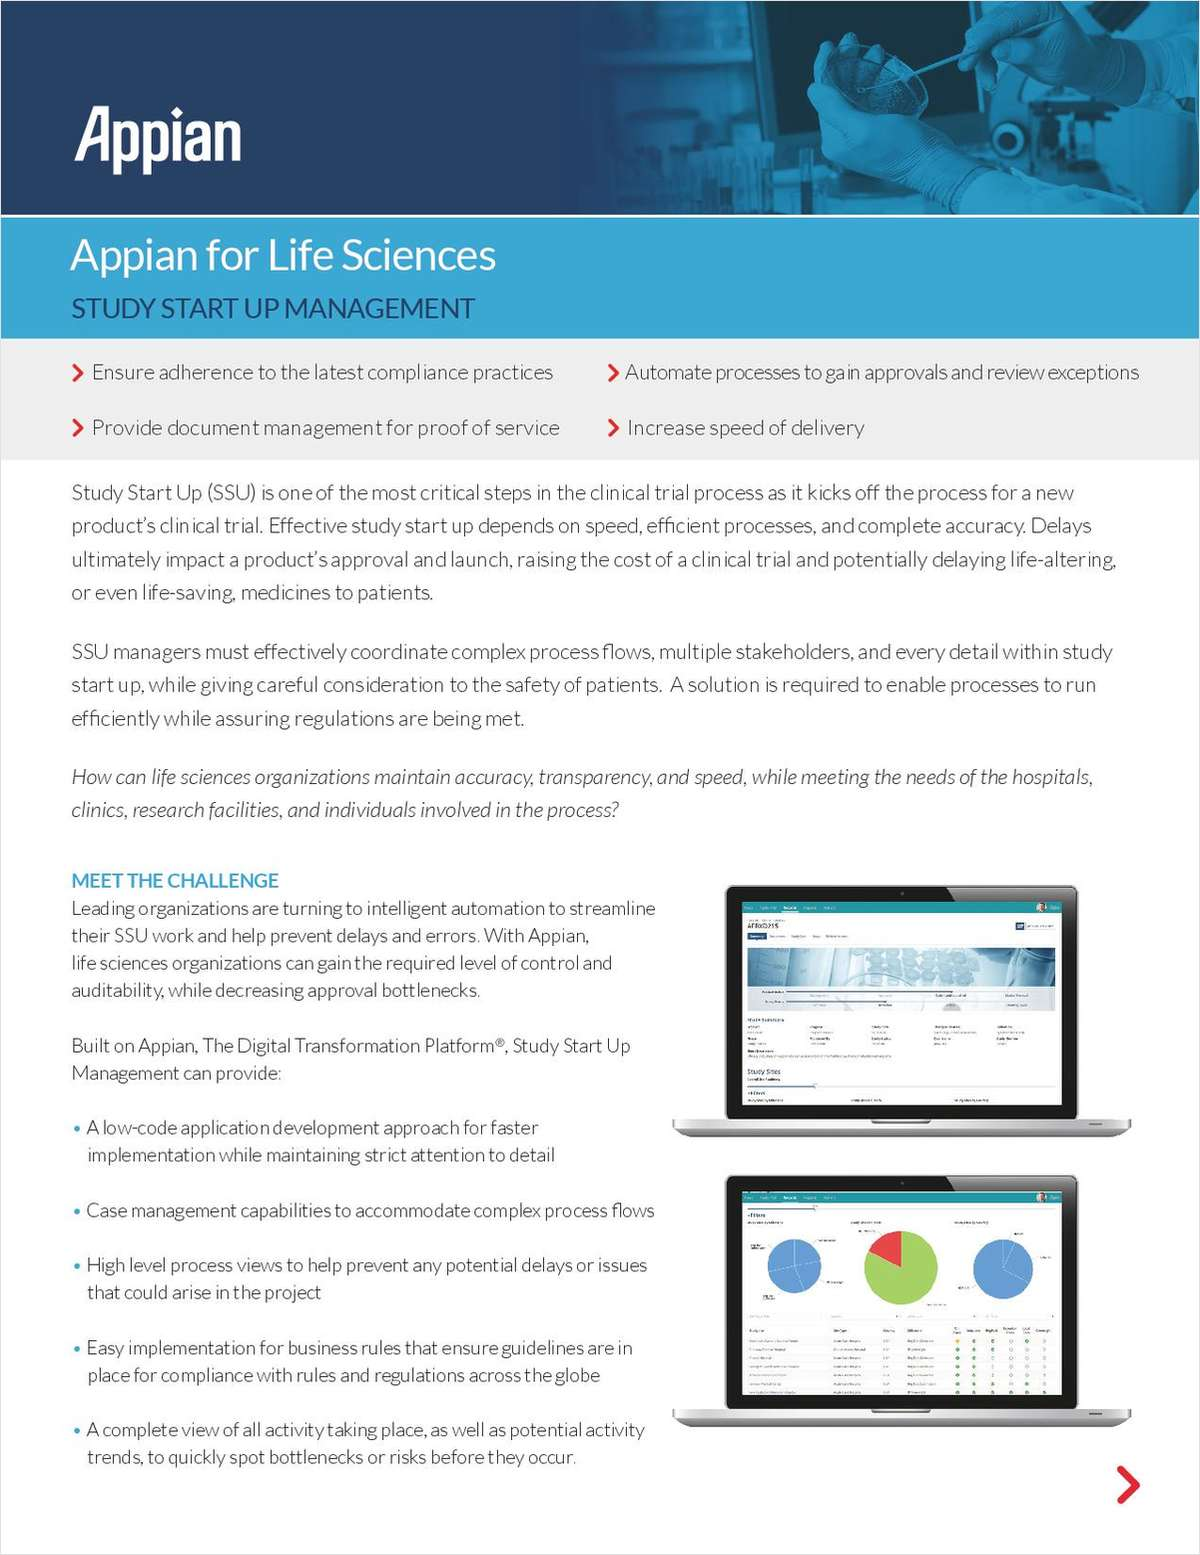 Appian for Life Sciences: Study Start Up